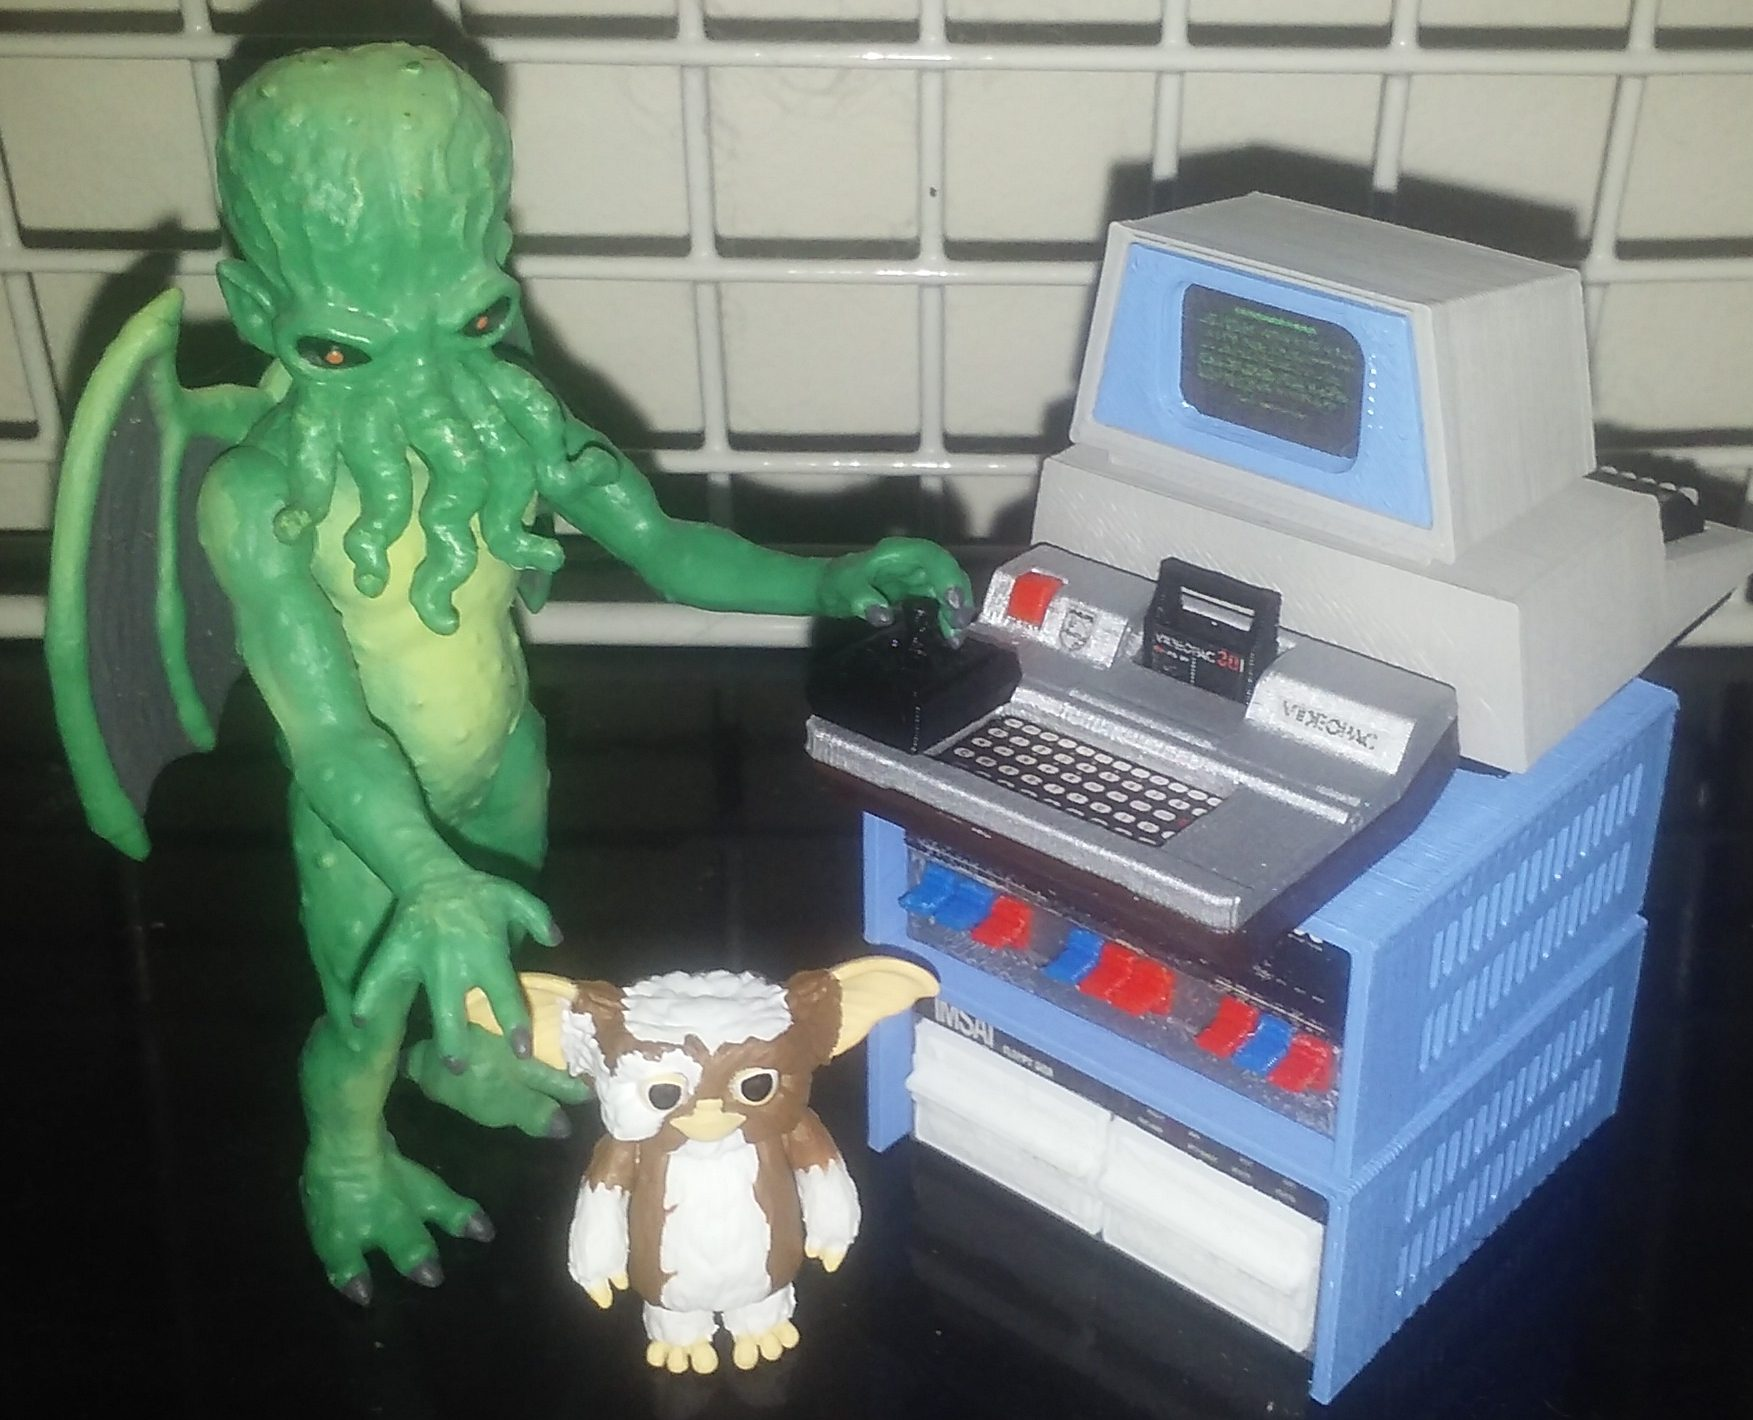 Cthulhu plays Videopac with Gizmo